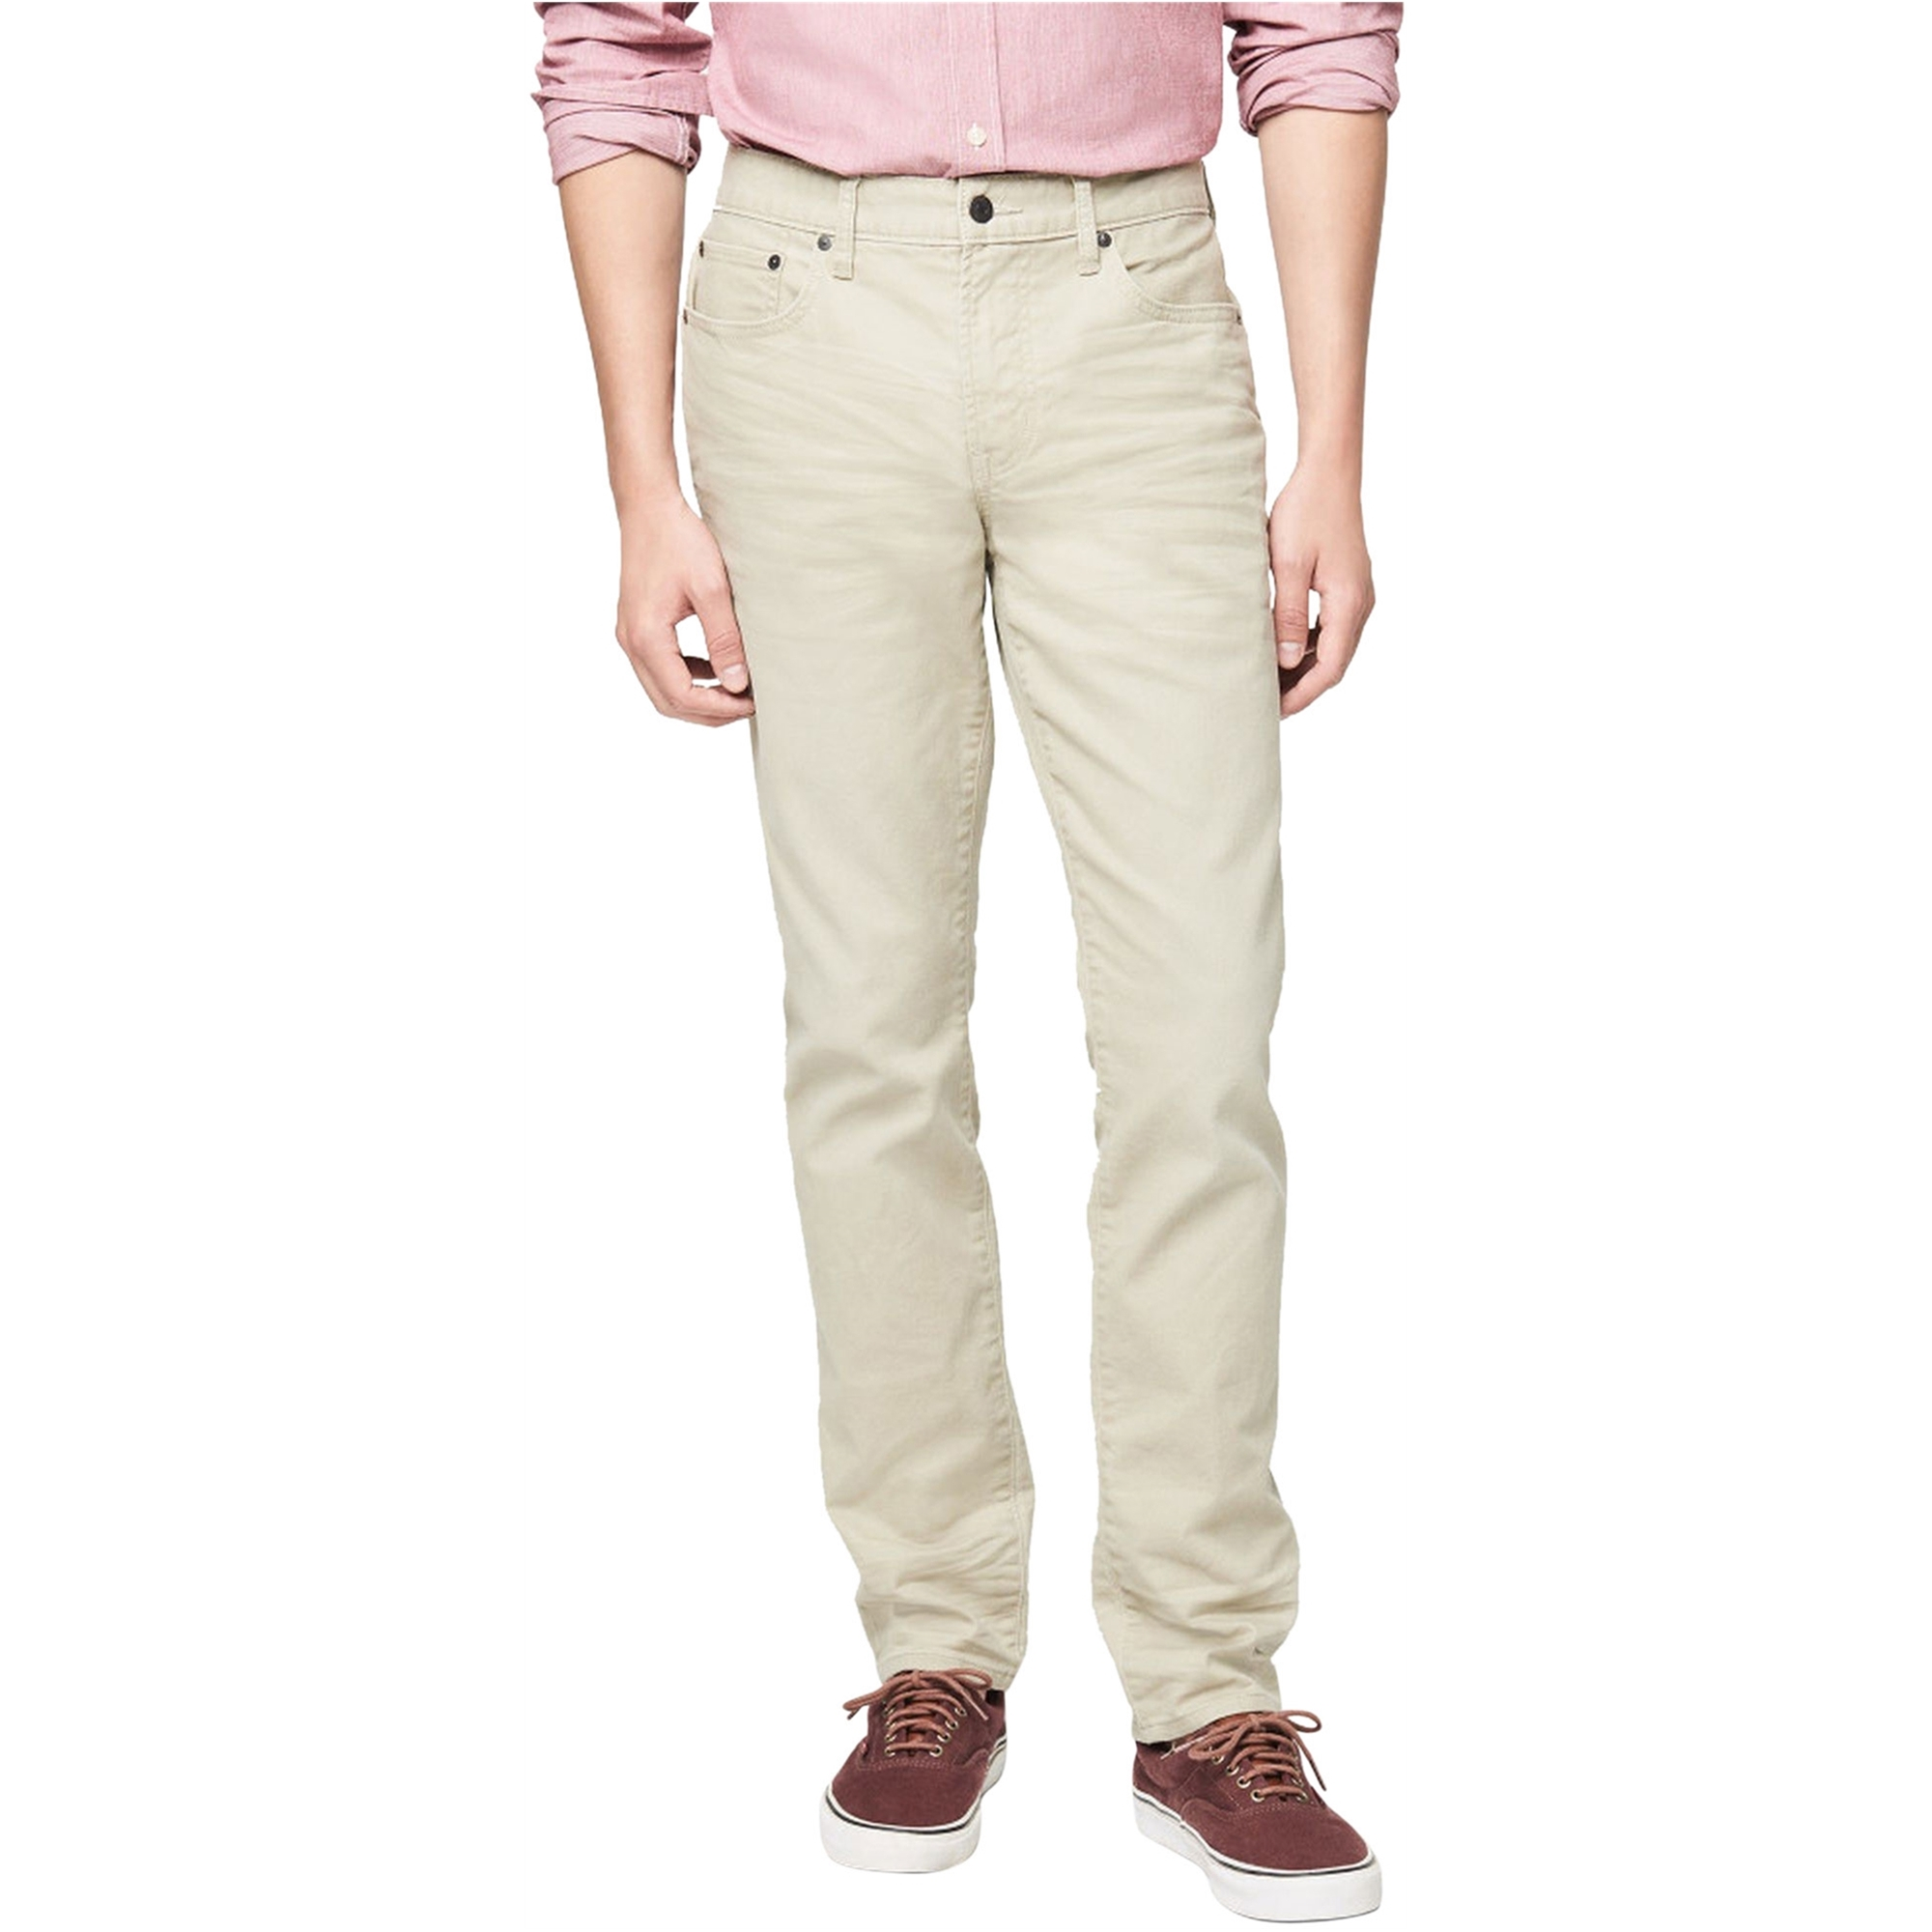 Aeropostale Mens Twill Casual Chino Pants